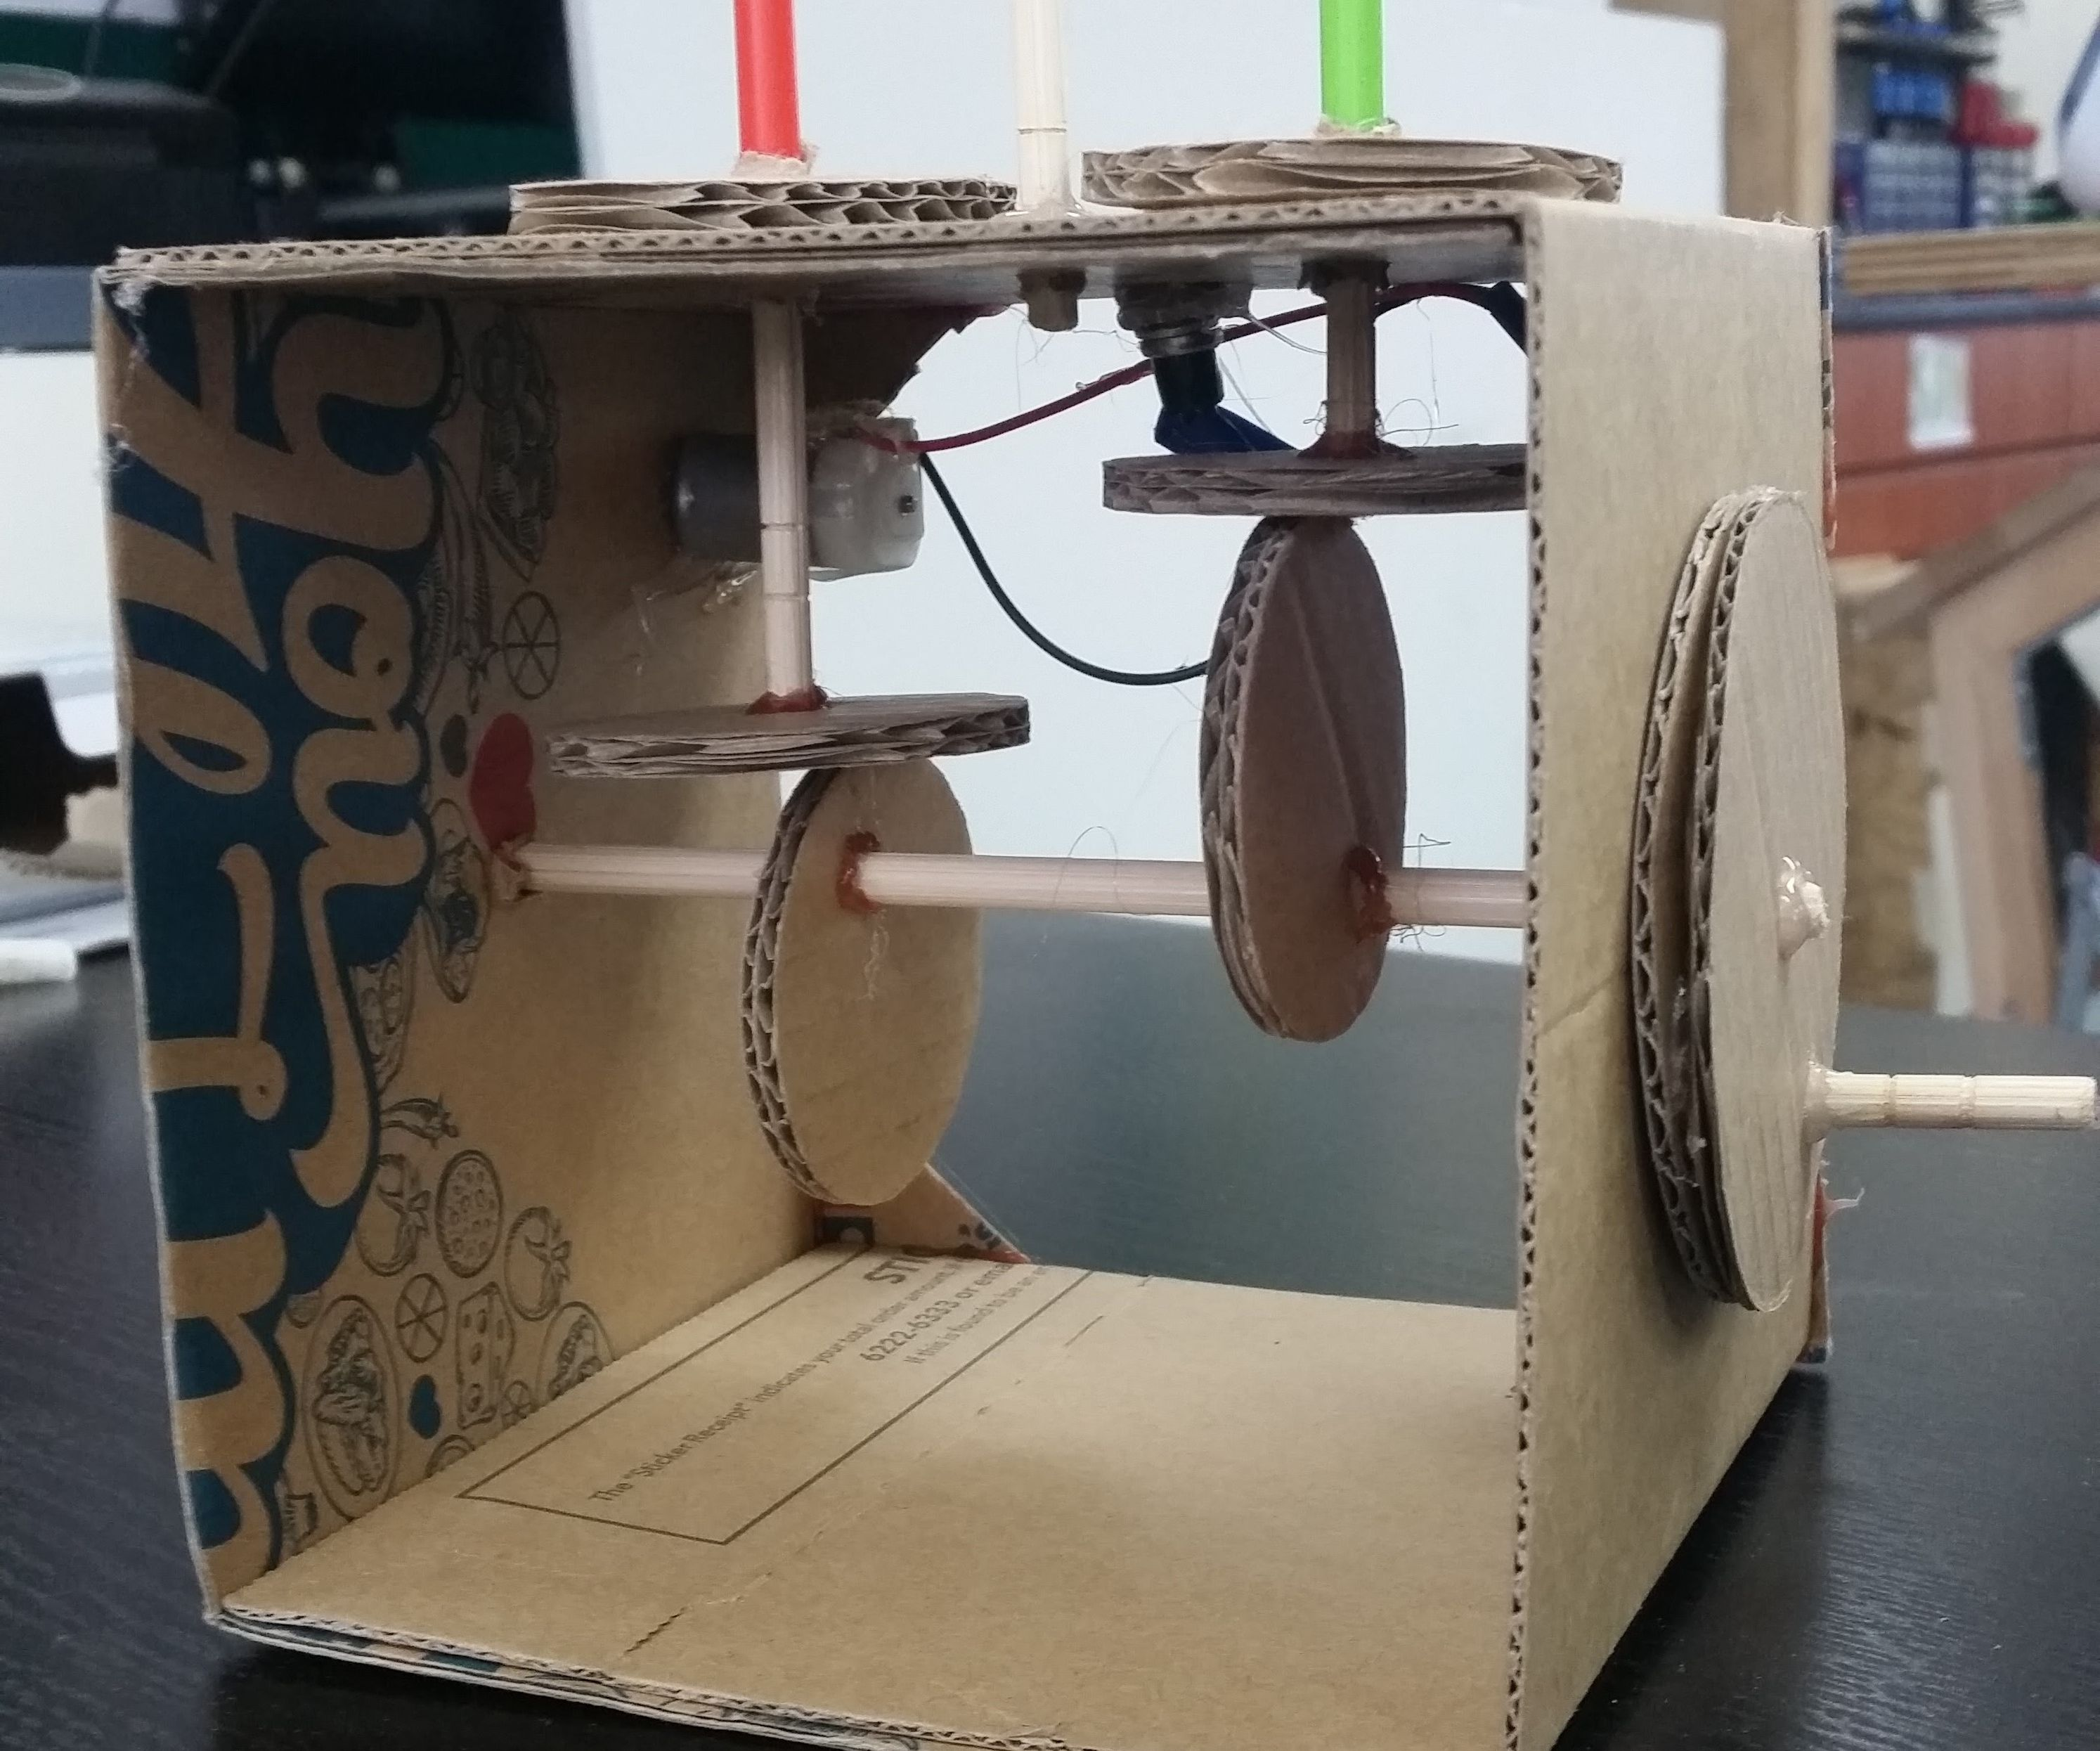 Easy Cardboard Automata Toy With a Motor